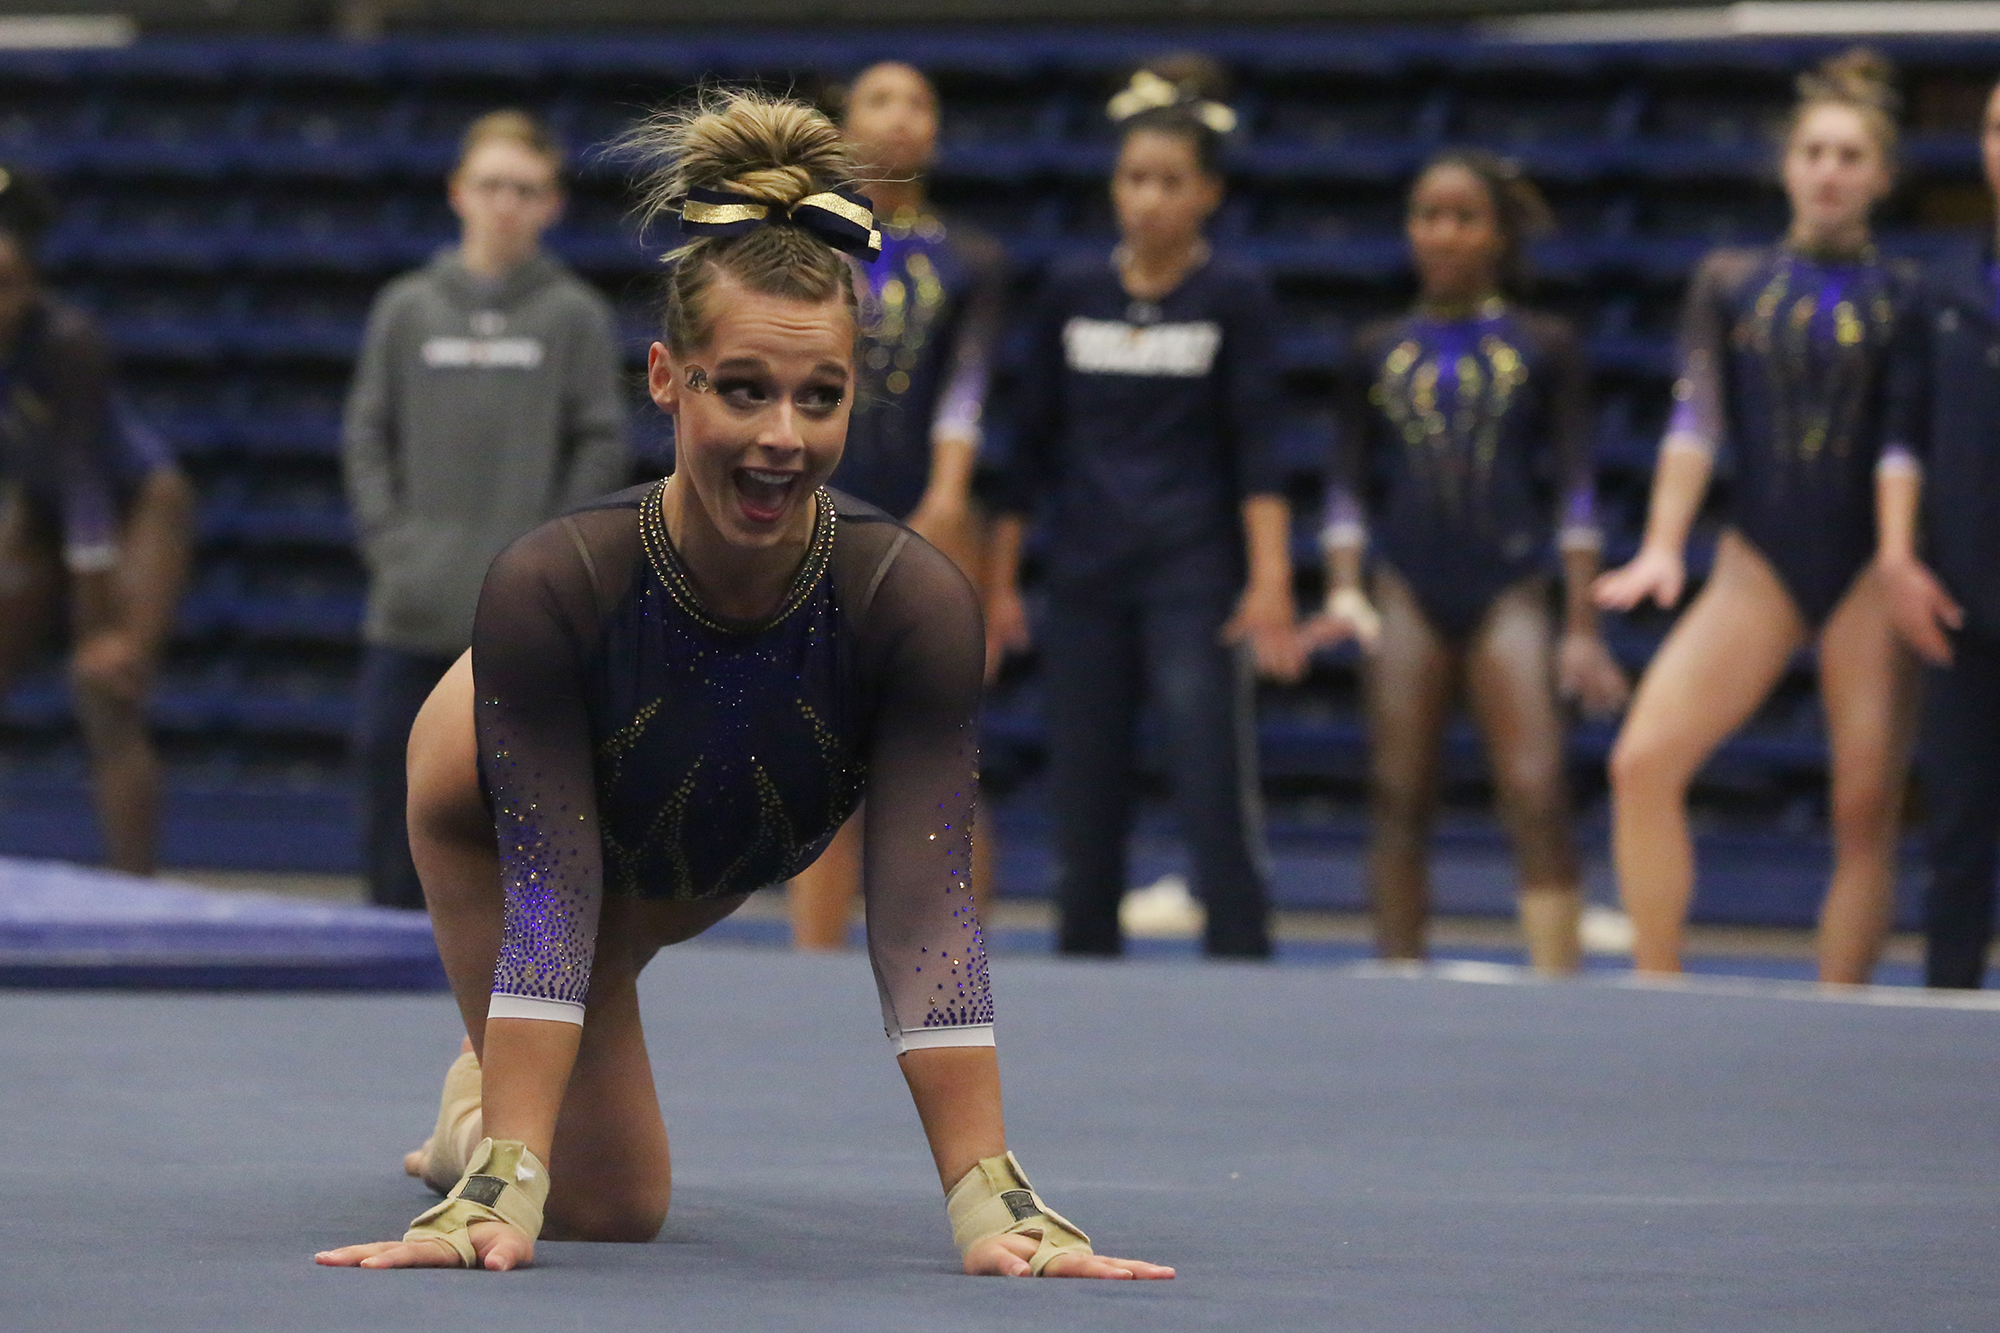 20b900e5fe89 Fletcher Claims Floor Title at MAC Gymnastics Championships - Kent State  University Athletics